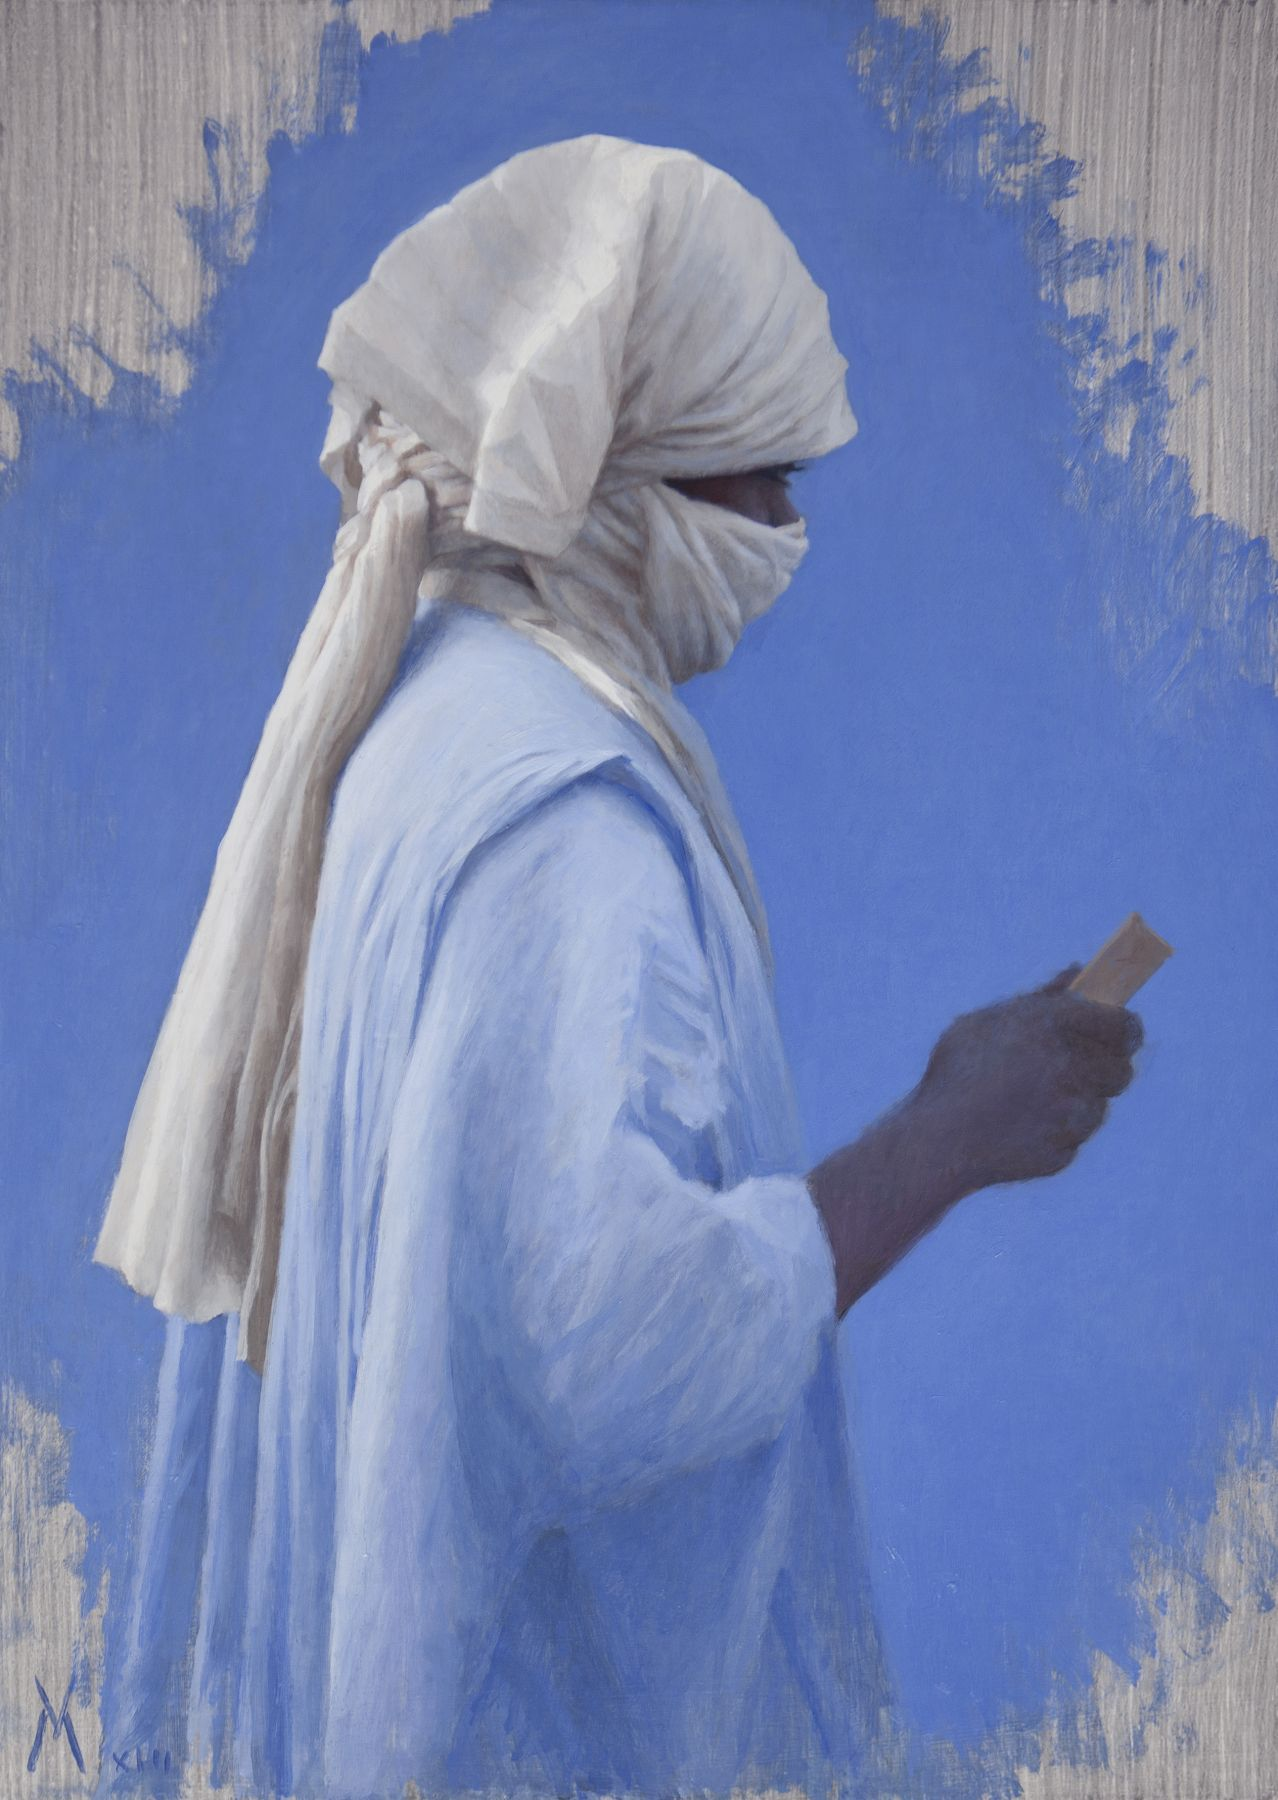 Guillermo Muñoz Vera, Study for a Man from Mali, Timbuktu (SOLD), 2013, oil on canvas mounted on panel, 27 1/2 x 19 5/8 inches